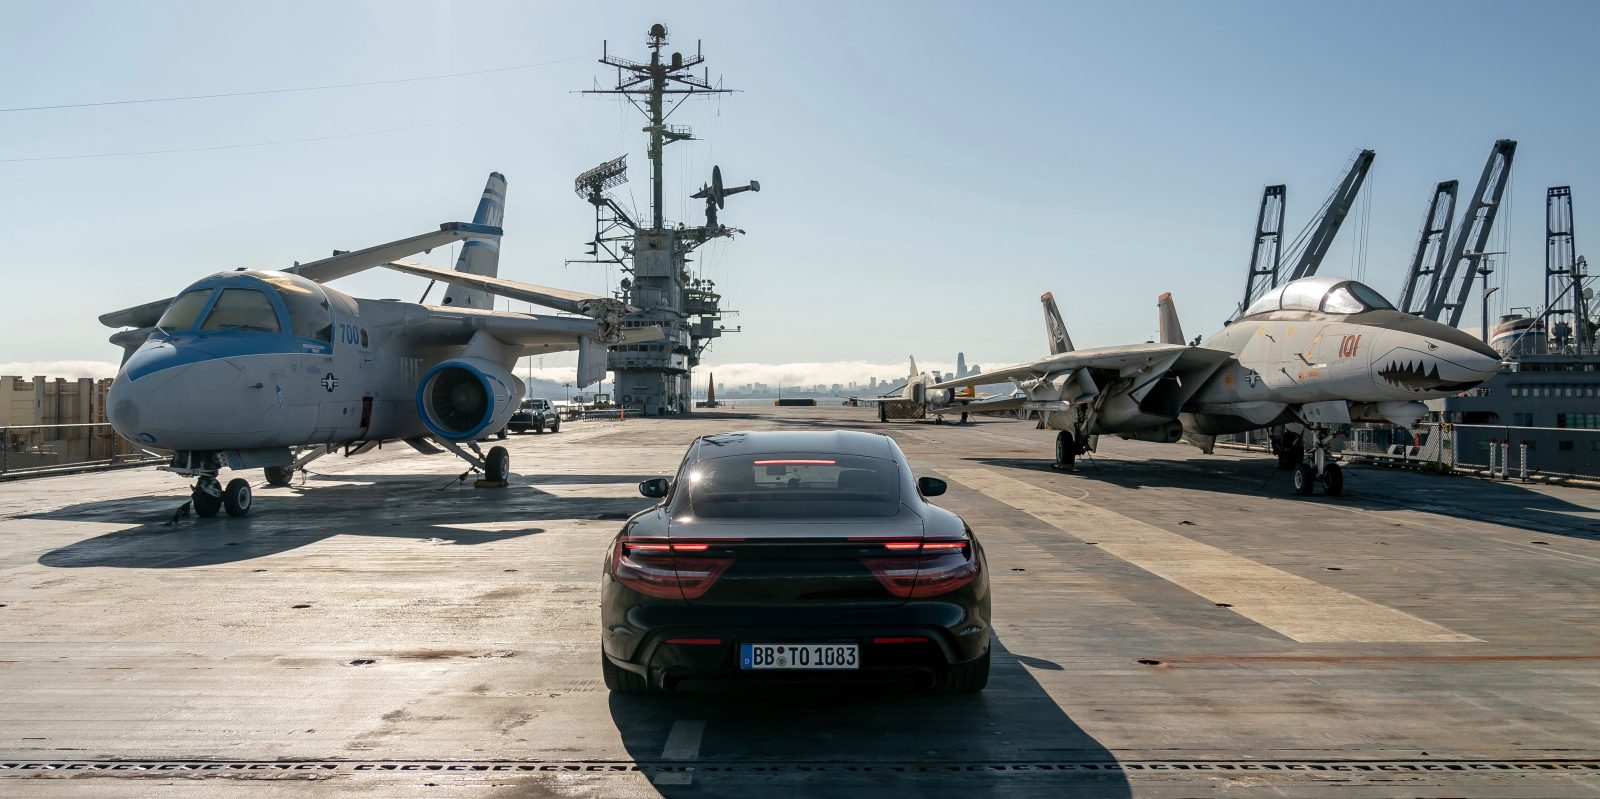 Porsche Taycan does 0-90 mph acceleration in 10 secs on an aircraft carrier